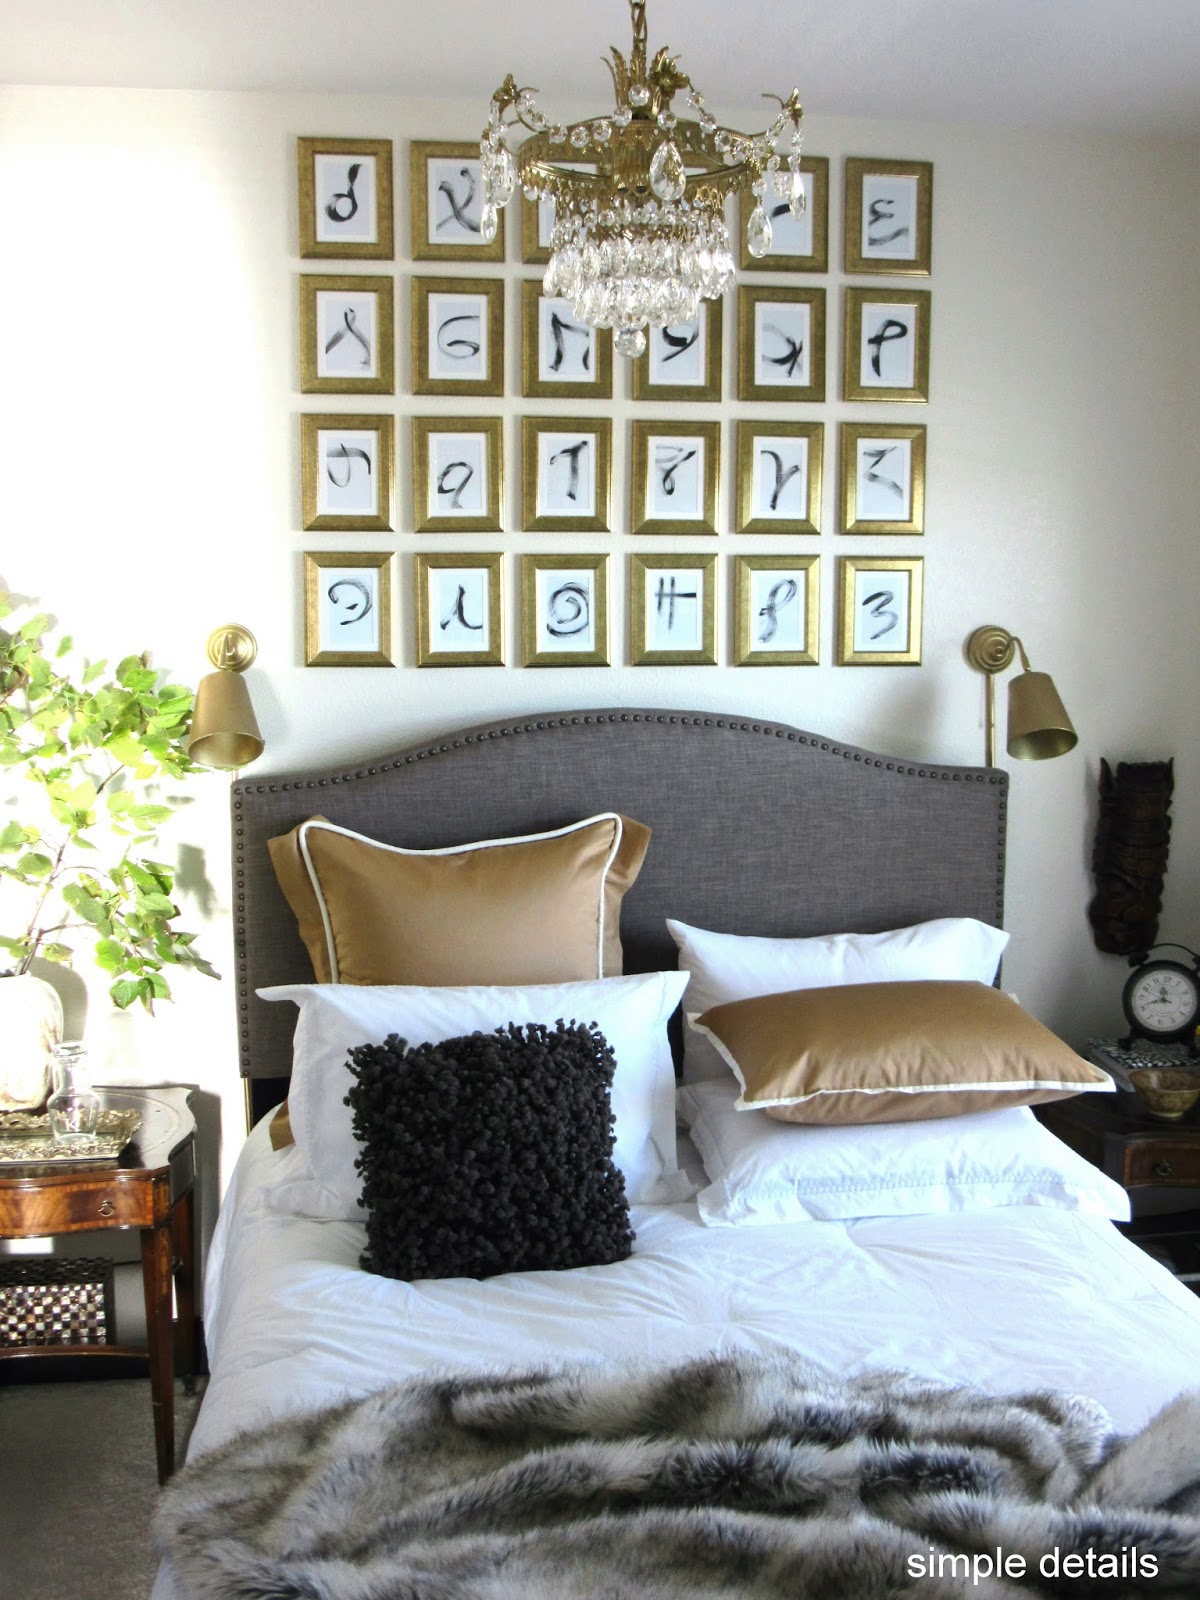 Rooms: Simple Details: Budget Guest Room Reveal